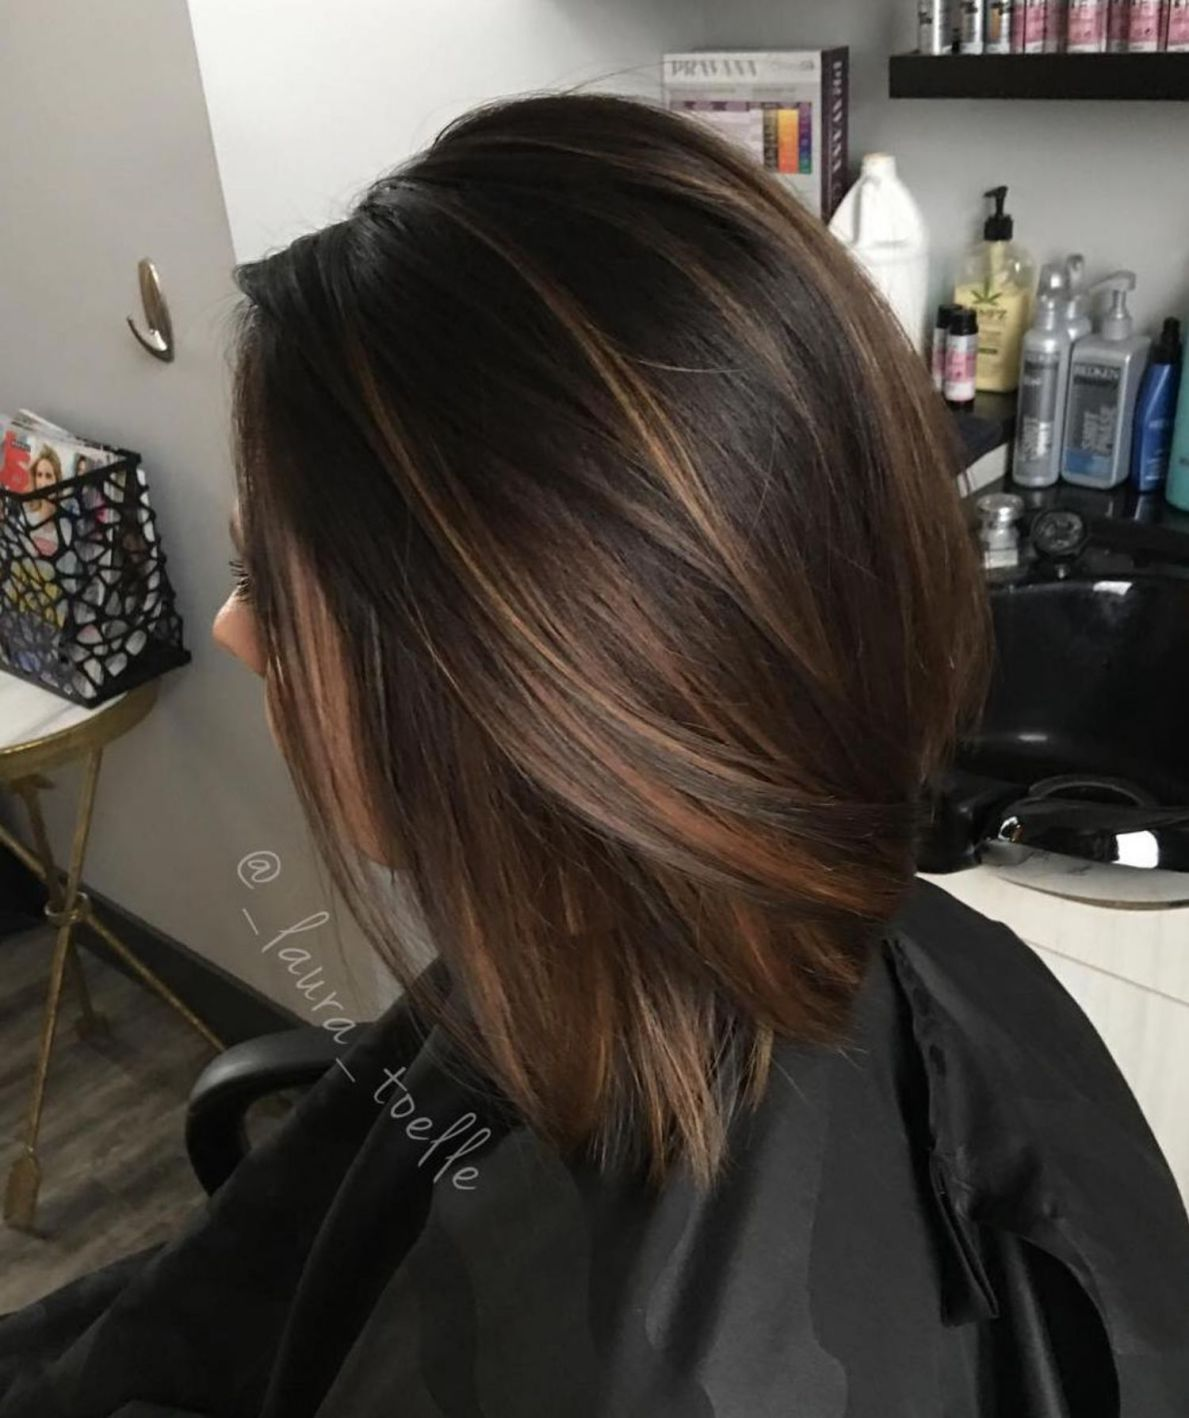 60 Chocolate Brown Hair Color Ideas For Brunettes Brown Bob Hair Balayage Straight Hair Brown Hair With Highlights